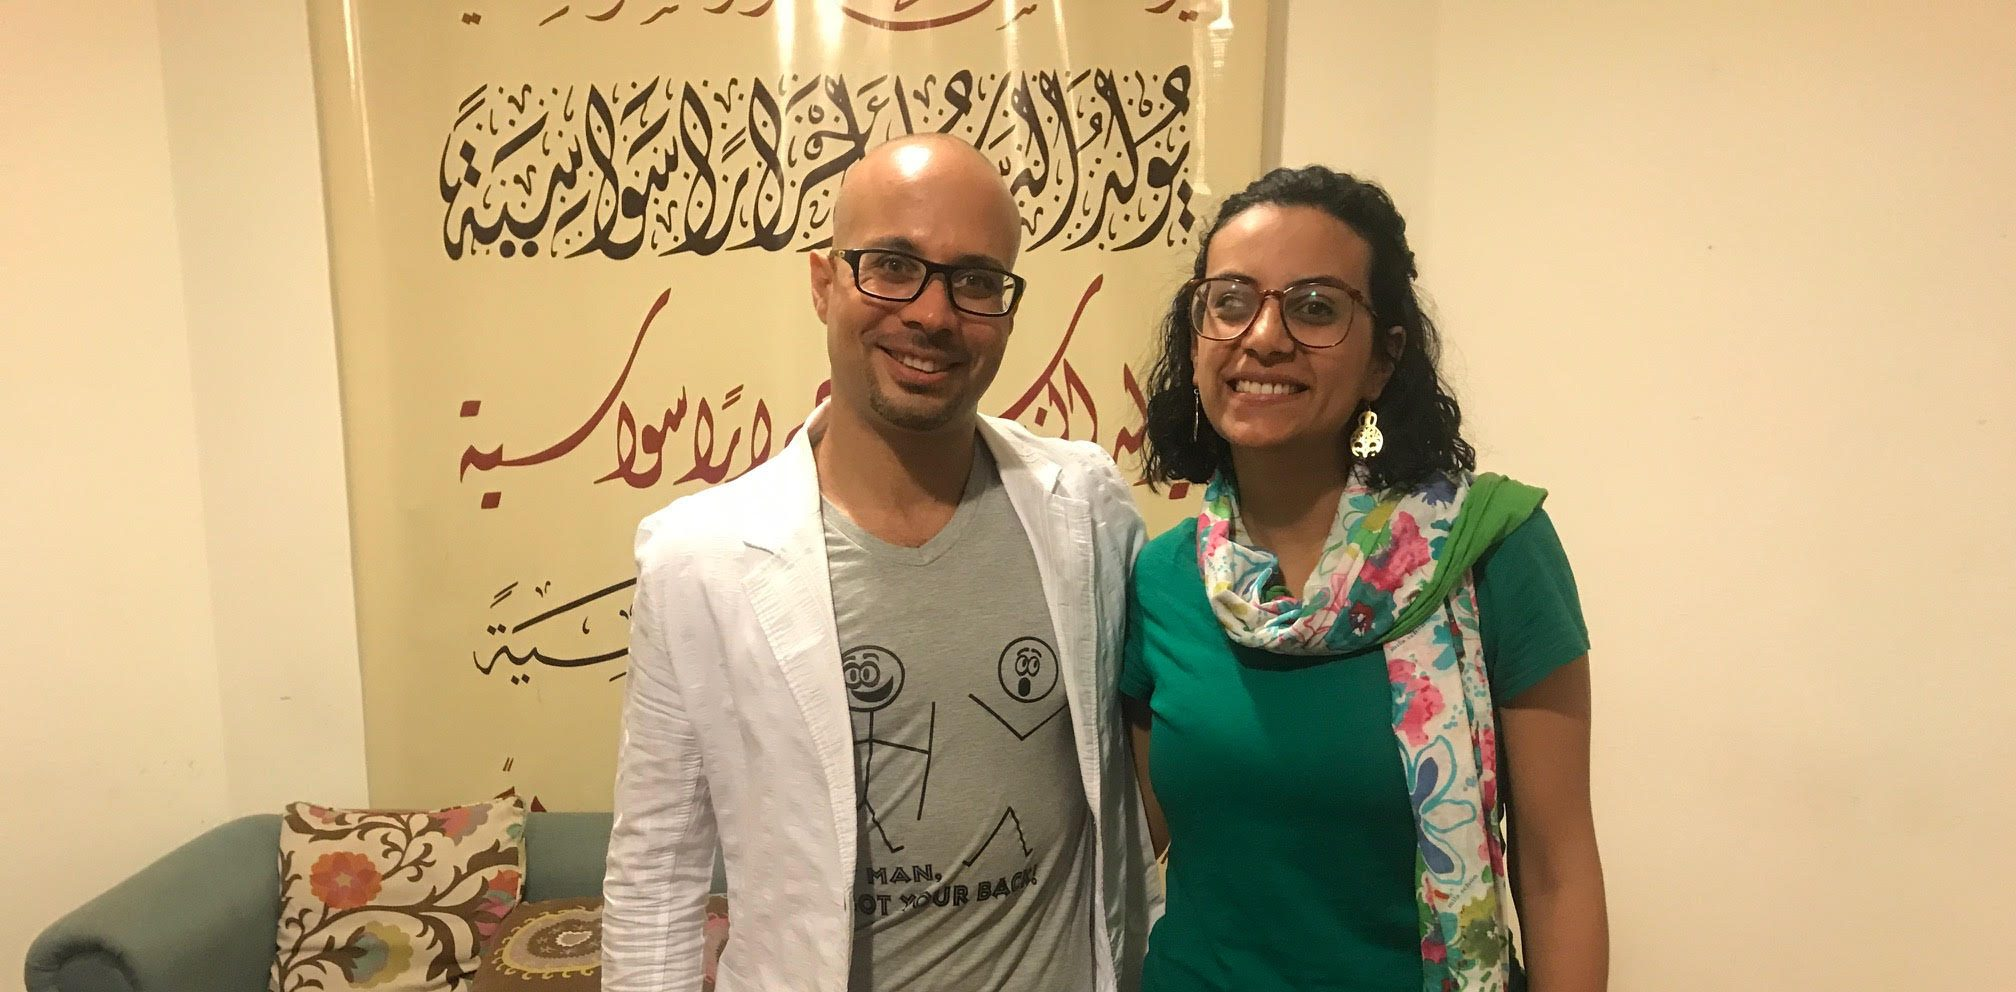 Ahmed Maher and his friend, human rights lawyer and activist Mahinour el-Masry pictured in Cairo, Egypt. Both had been jailed for their activism. (Lauren Bohn/GroundTruth)